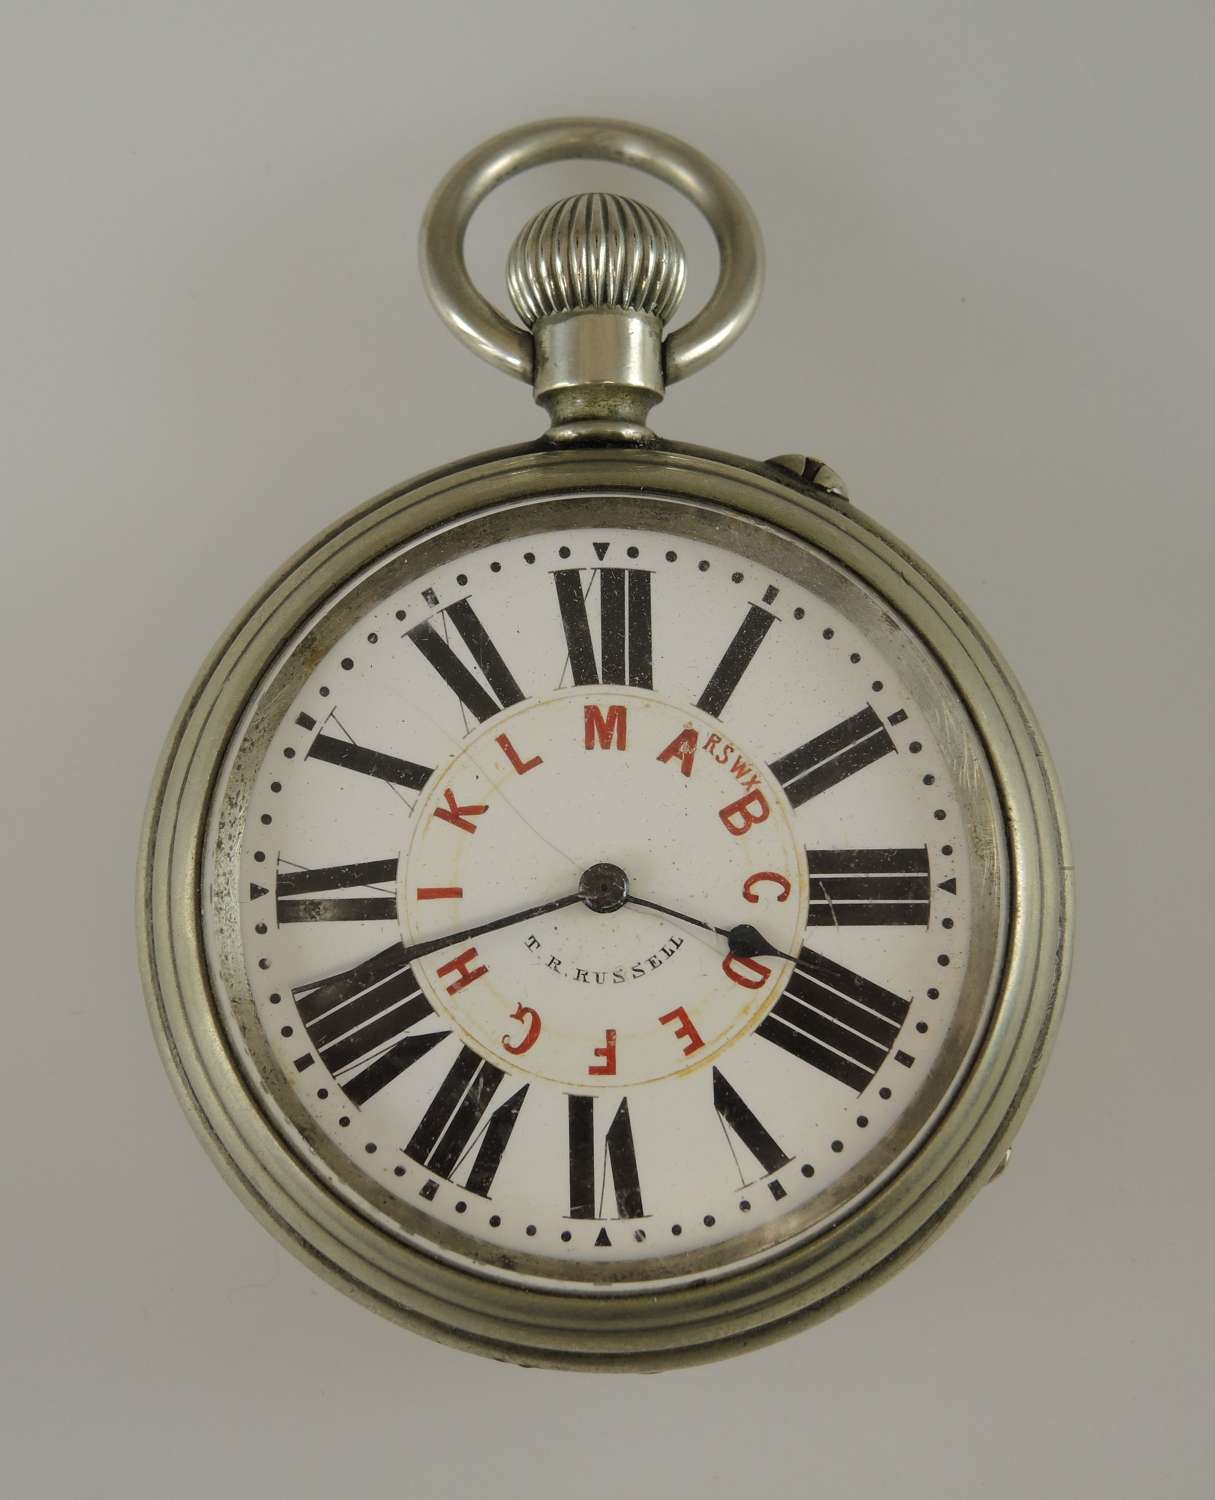 Rare TELEGRAPHIC WIRE dial pocket watch c1915